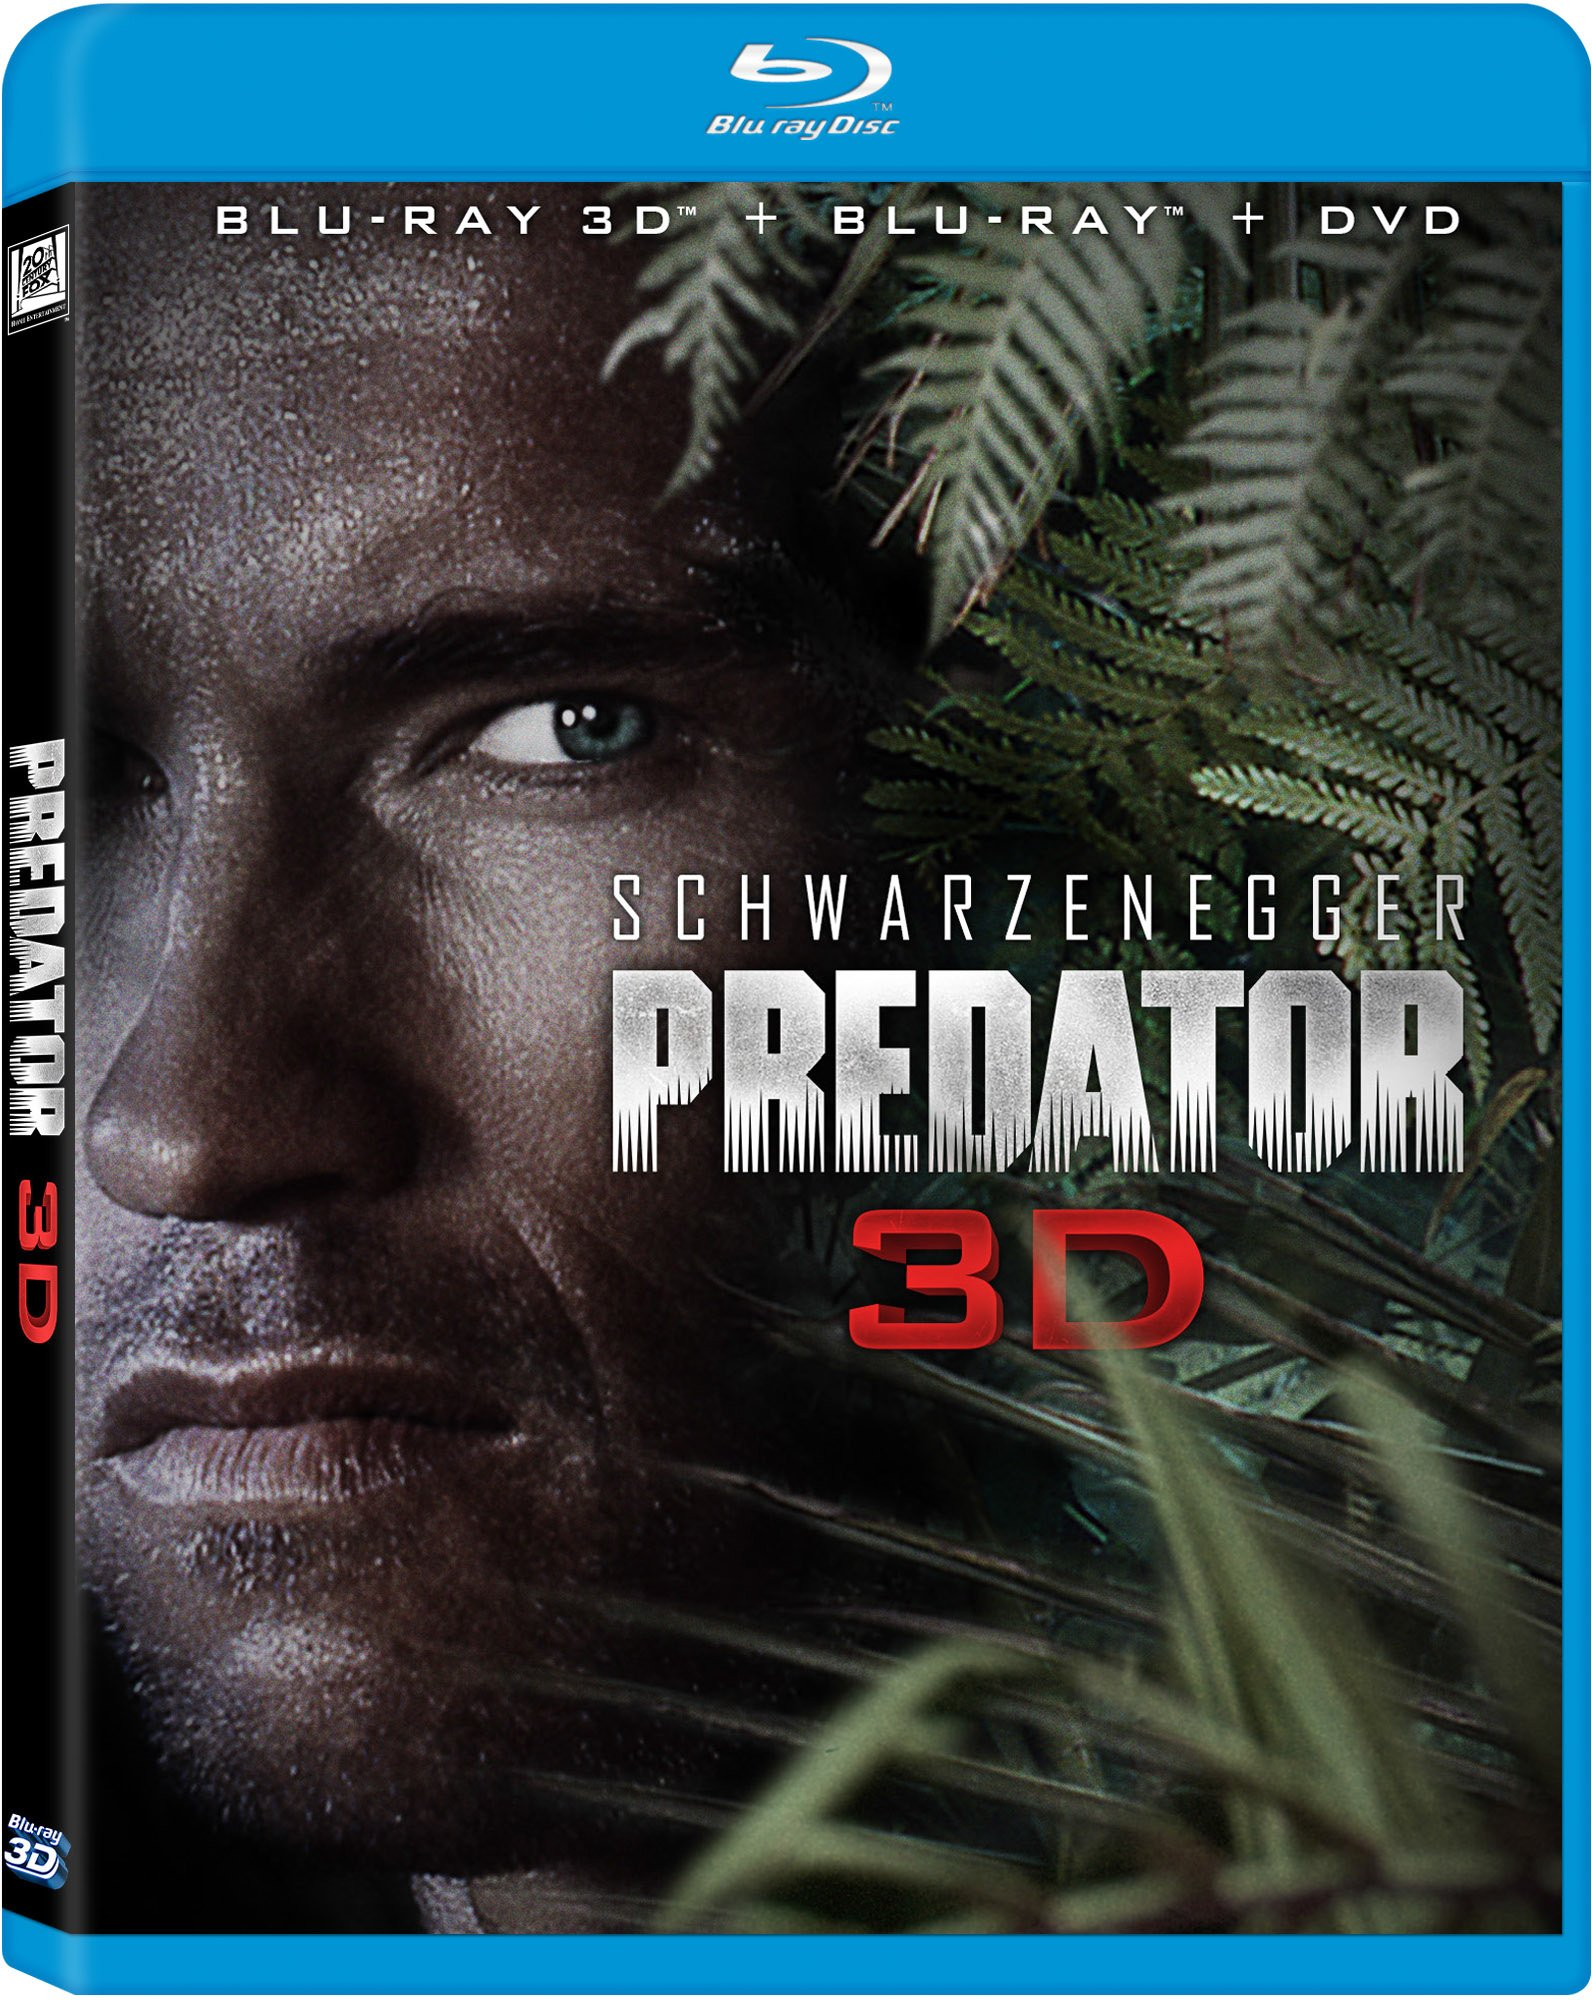 Blu-ray 3D : Predator (With DVD, Dubbed, 2 Pack, Widescreen, Digital Theater System)